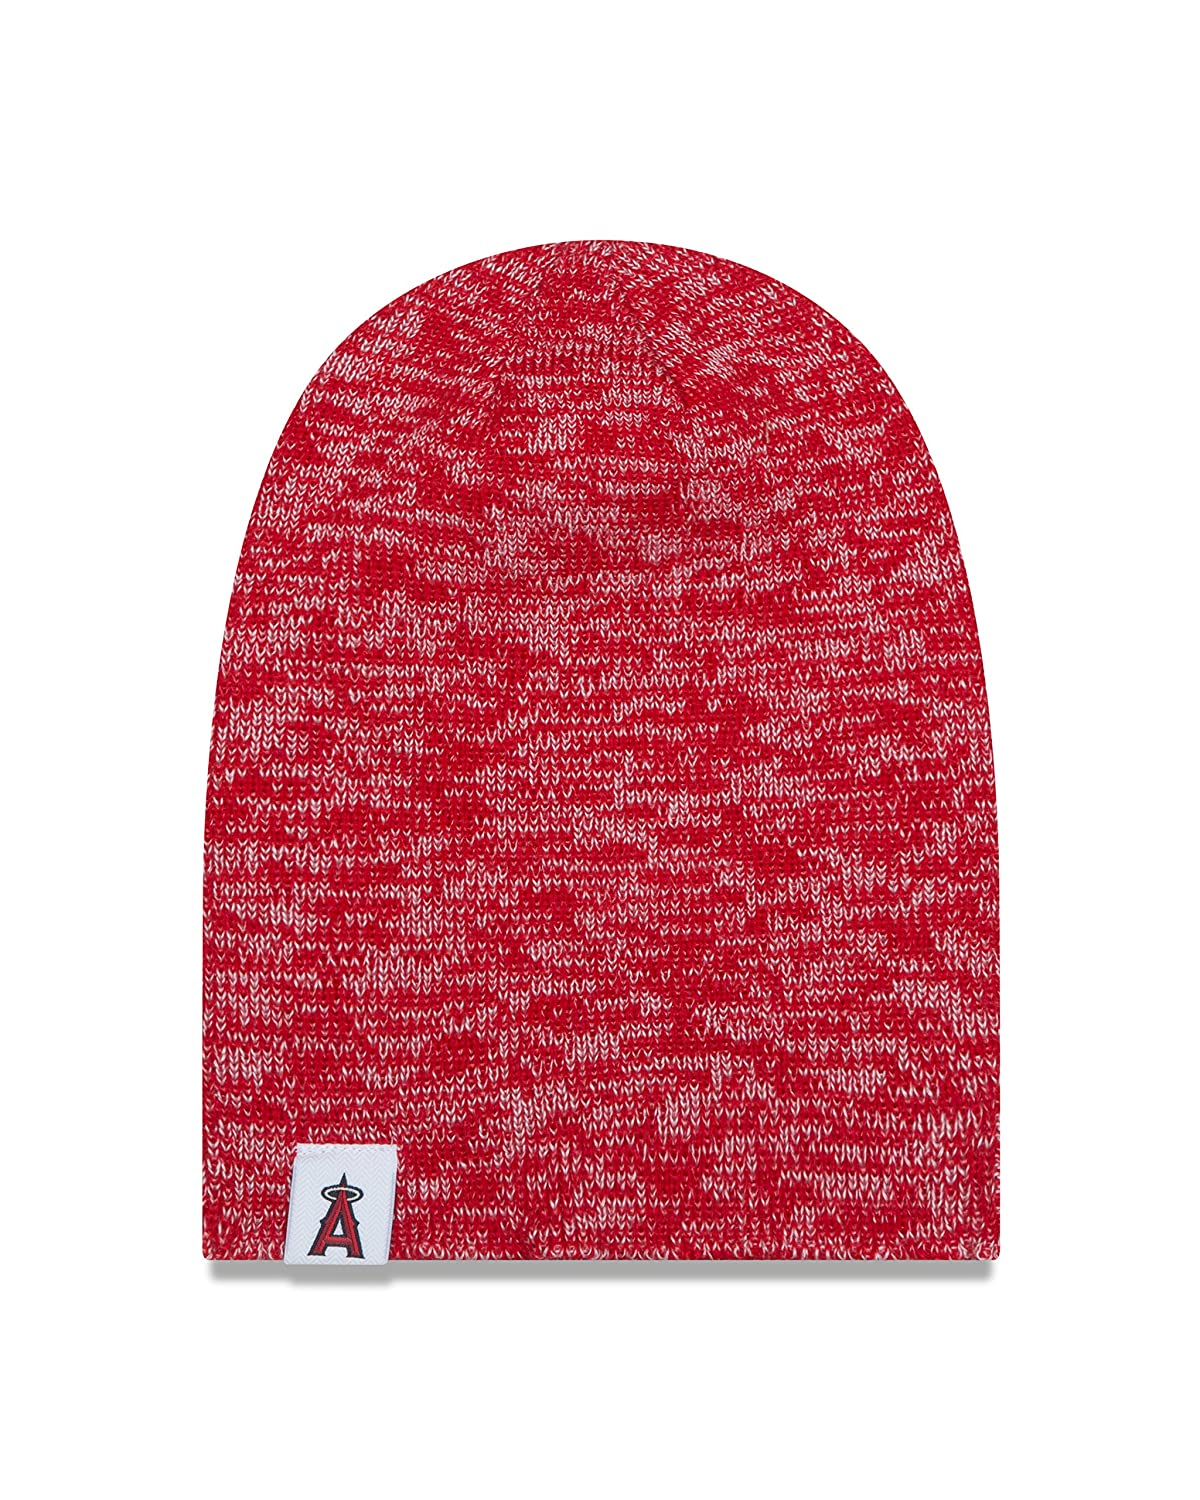 570a1bd8172 Amazon.com   New Era MLB Los Angeles Angels Women s Team Blend Long Knit  Beanie